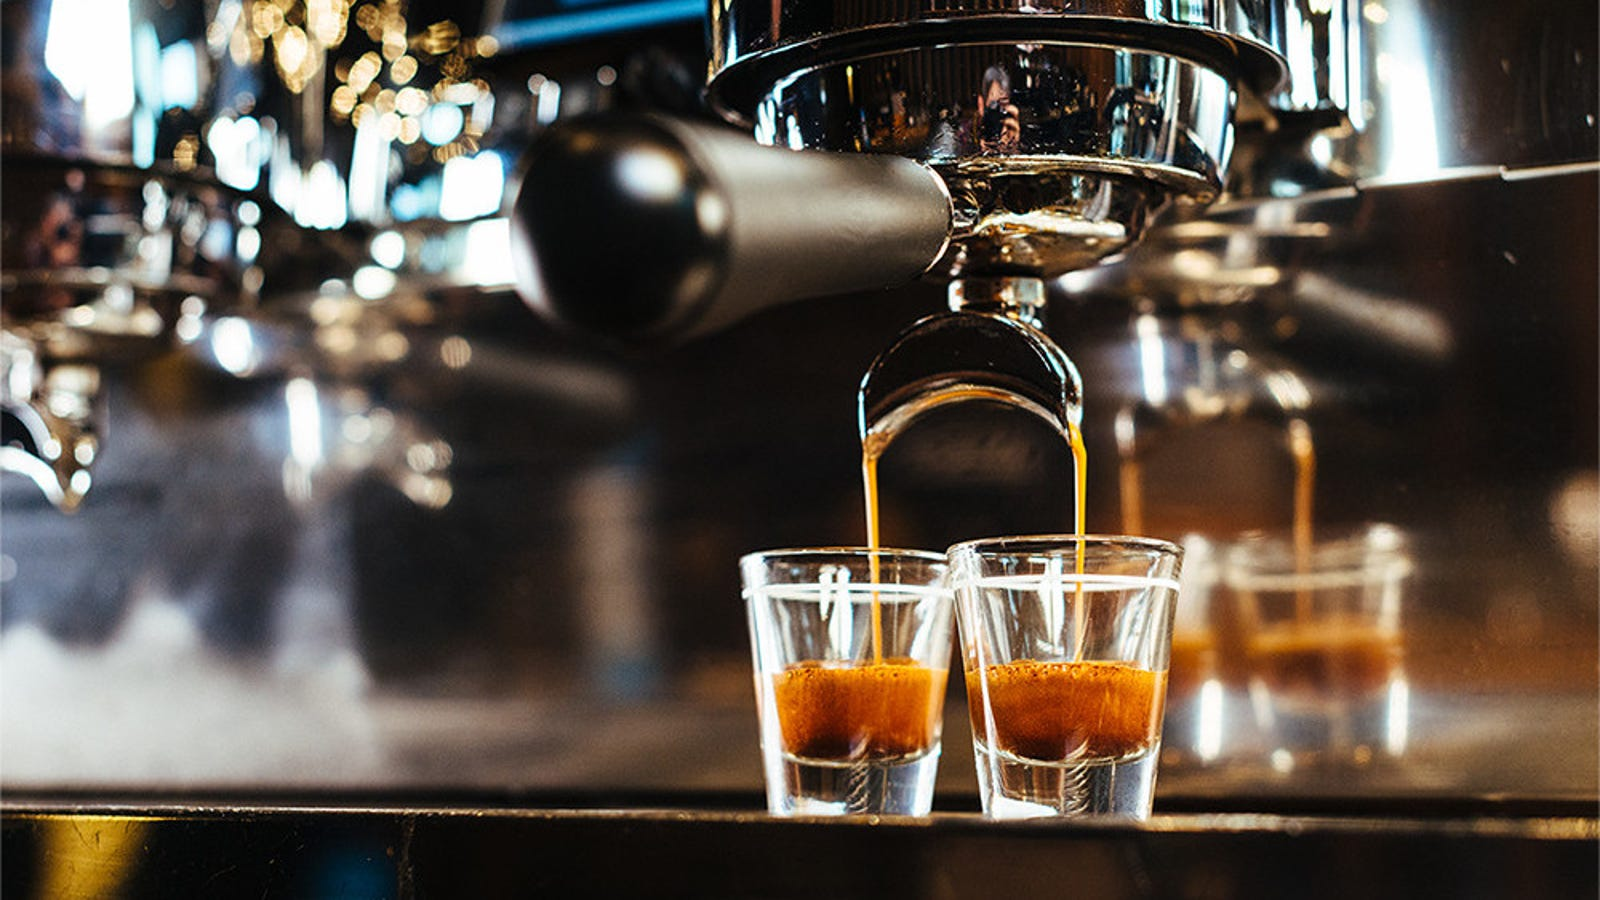 Starbucks Blonde Espresso is here to make your drink order ...